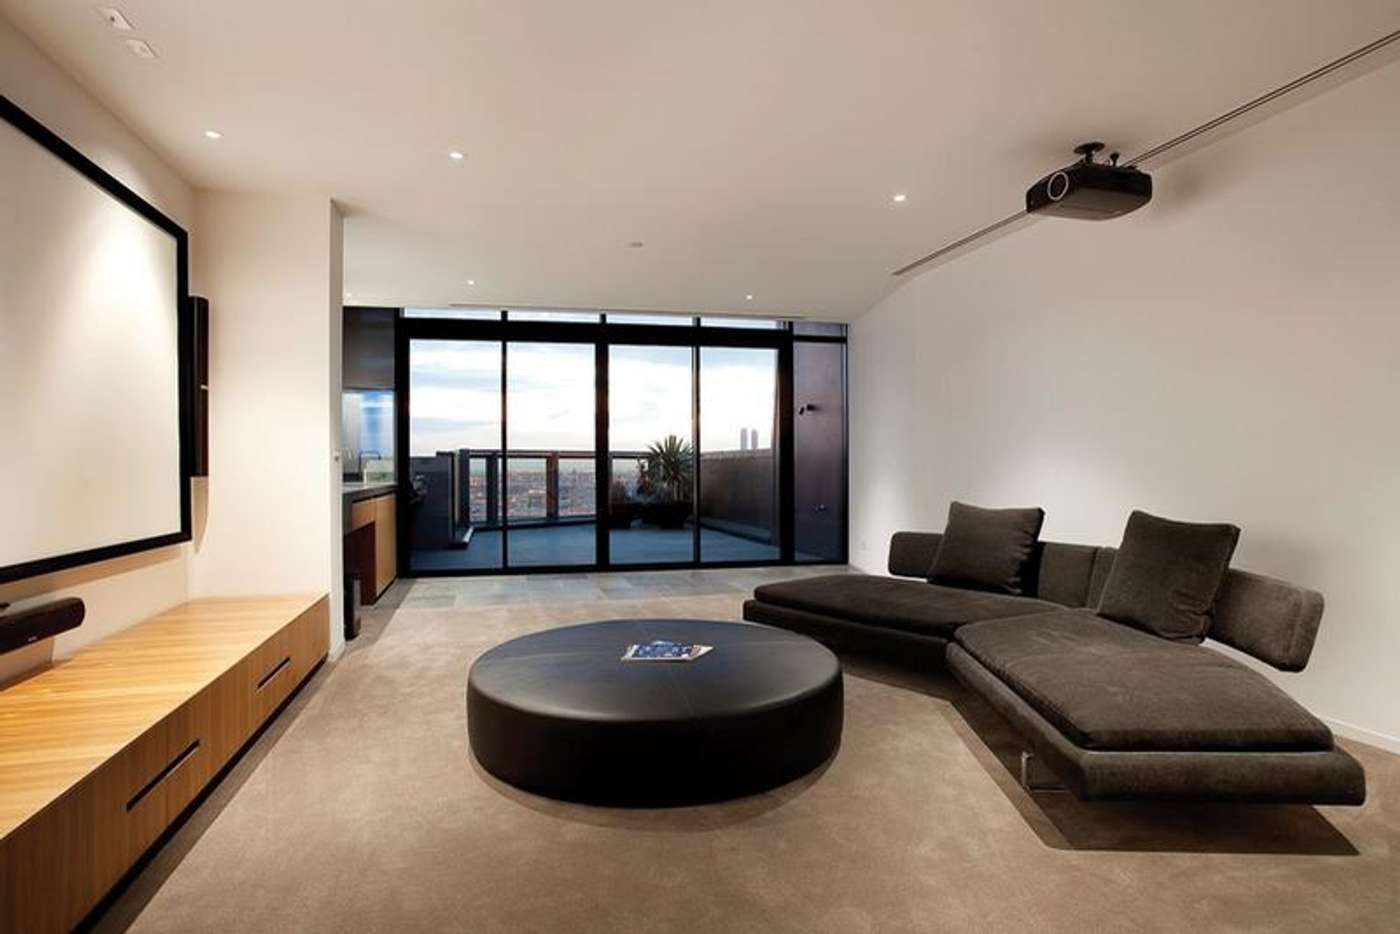 Sixth view of Homely house listing, 301/55 Victoria Harbour Promenade, Docklands VIC 3008